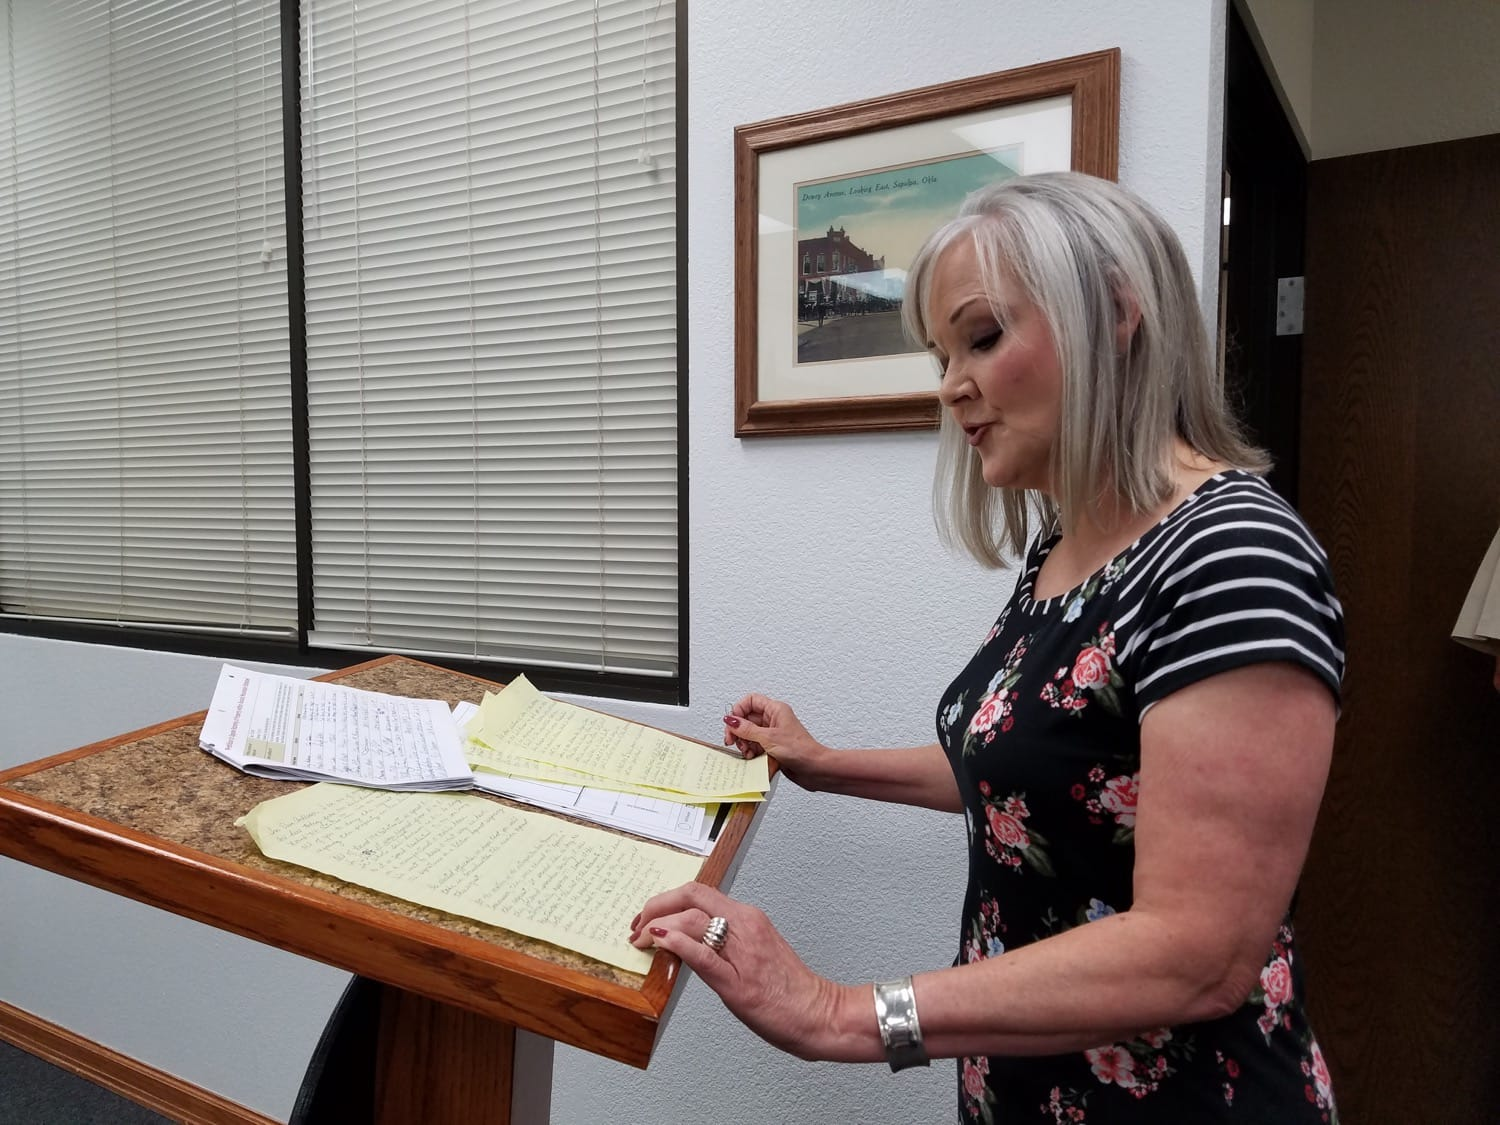 Elisa Anderson speaks at Monday's County Commissioners meeting. Anderson has a petition of 102 signatures asking the County not to allow a mobile home in their Sand Springs neighborhood.